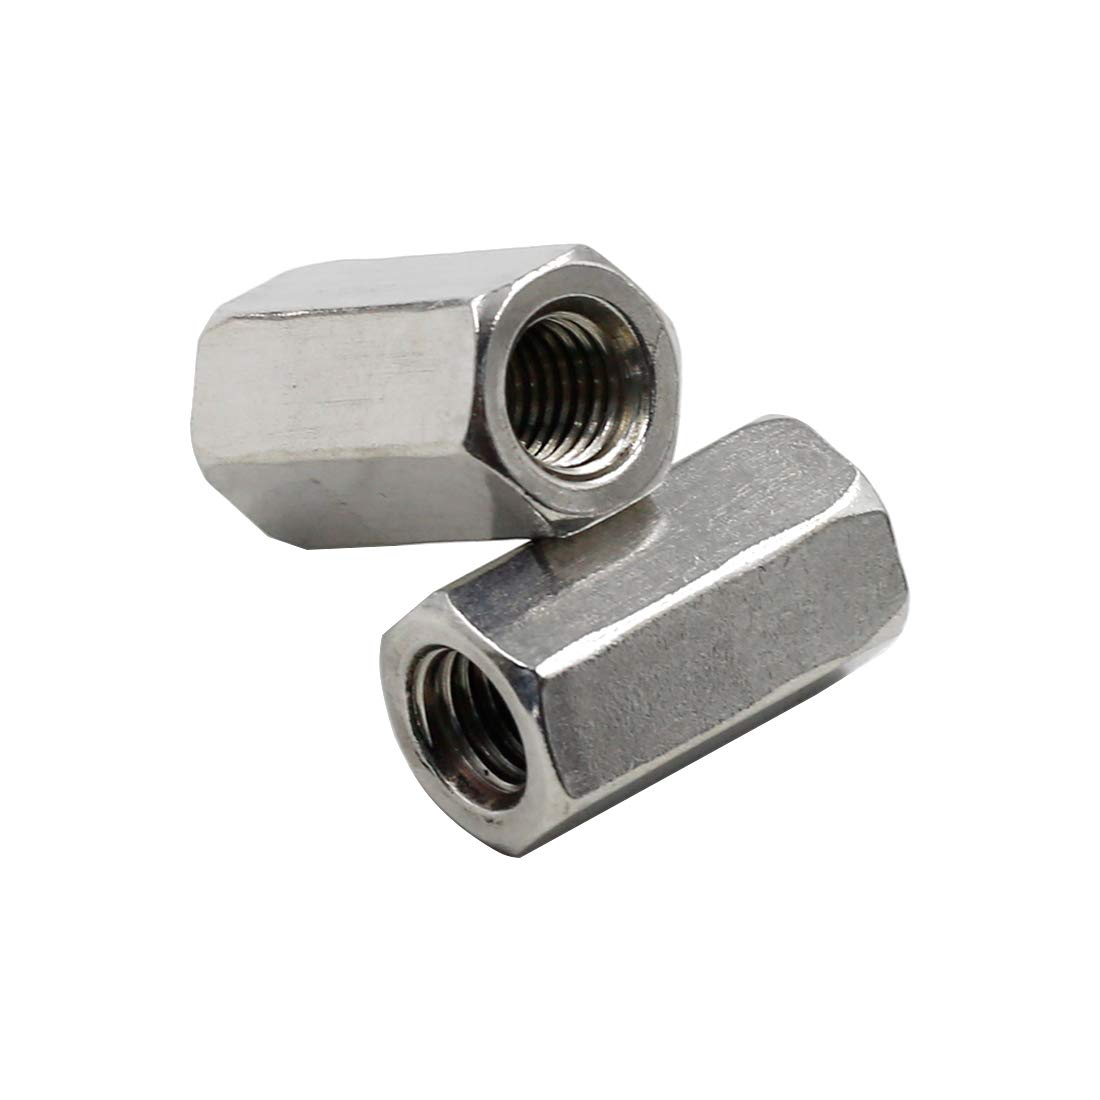 TOUHIA 8pcs M8 X 1.25-Pitch 24mm Length Metric Hex Coupling Nut 304 Stainless Steel Rod Coupling Nuts